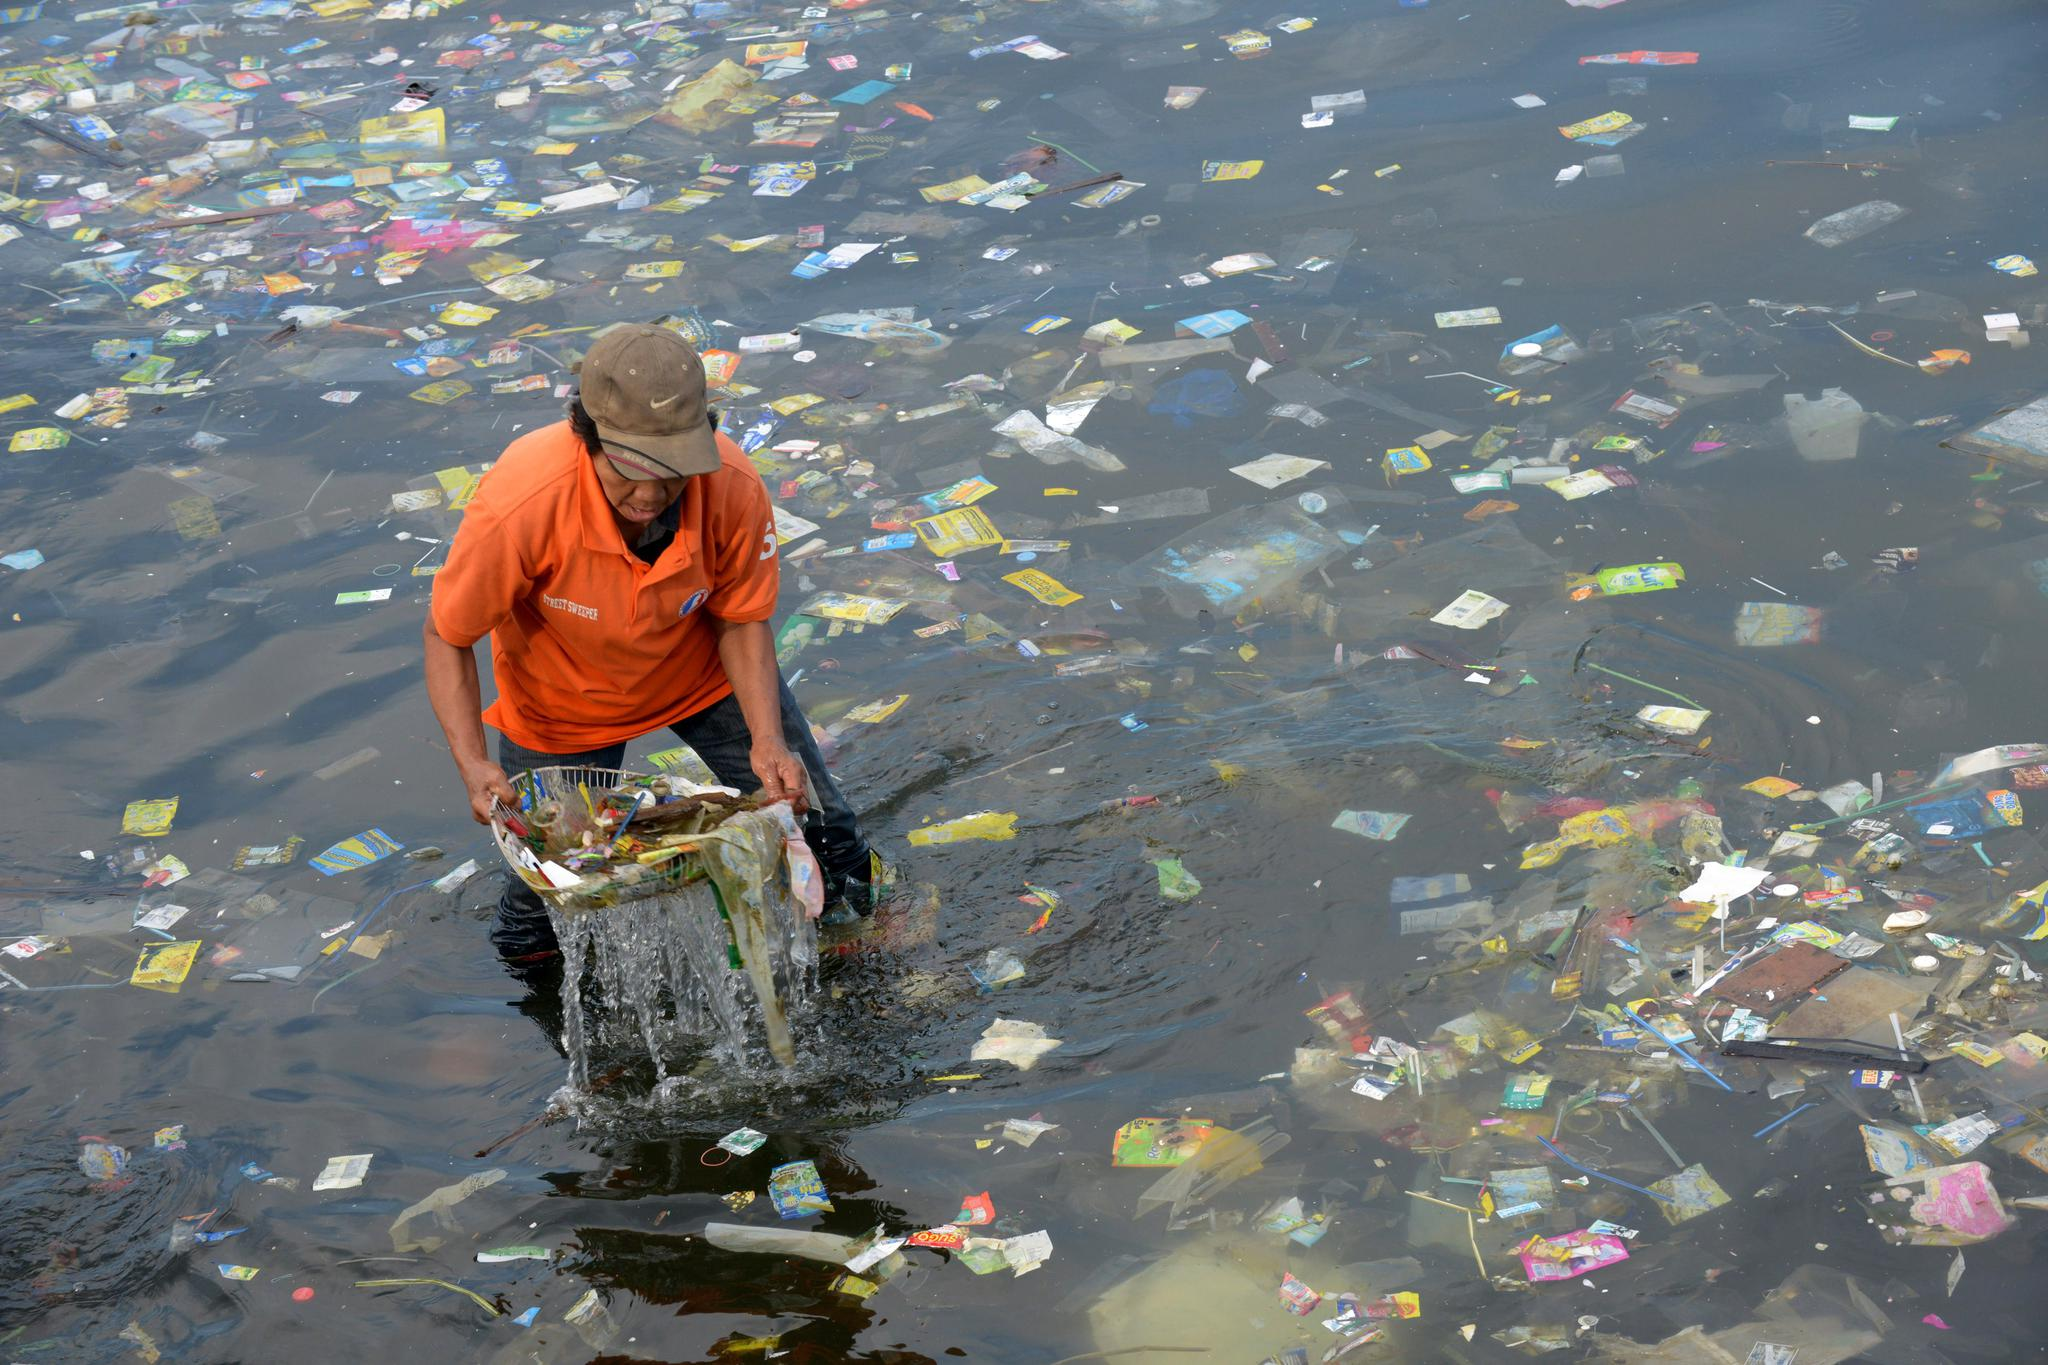 Plastic is found in small concentrations in oceans around the world—Manila Bay is an extreme example.